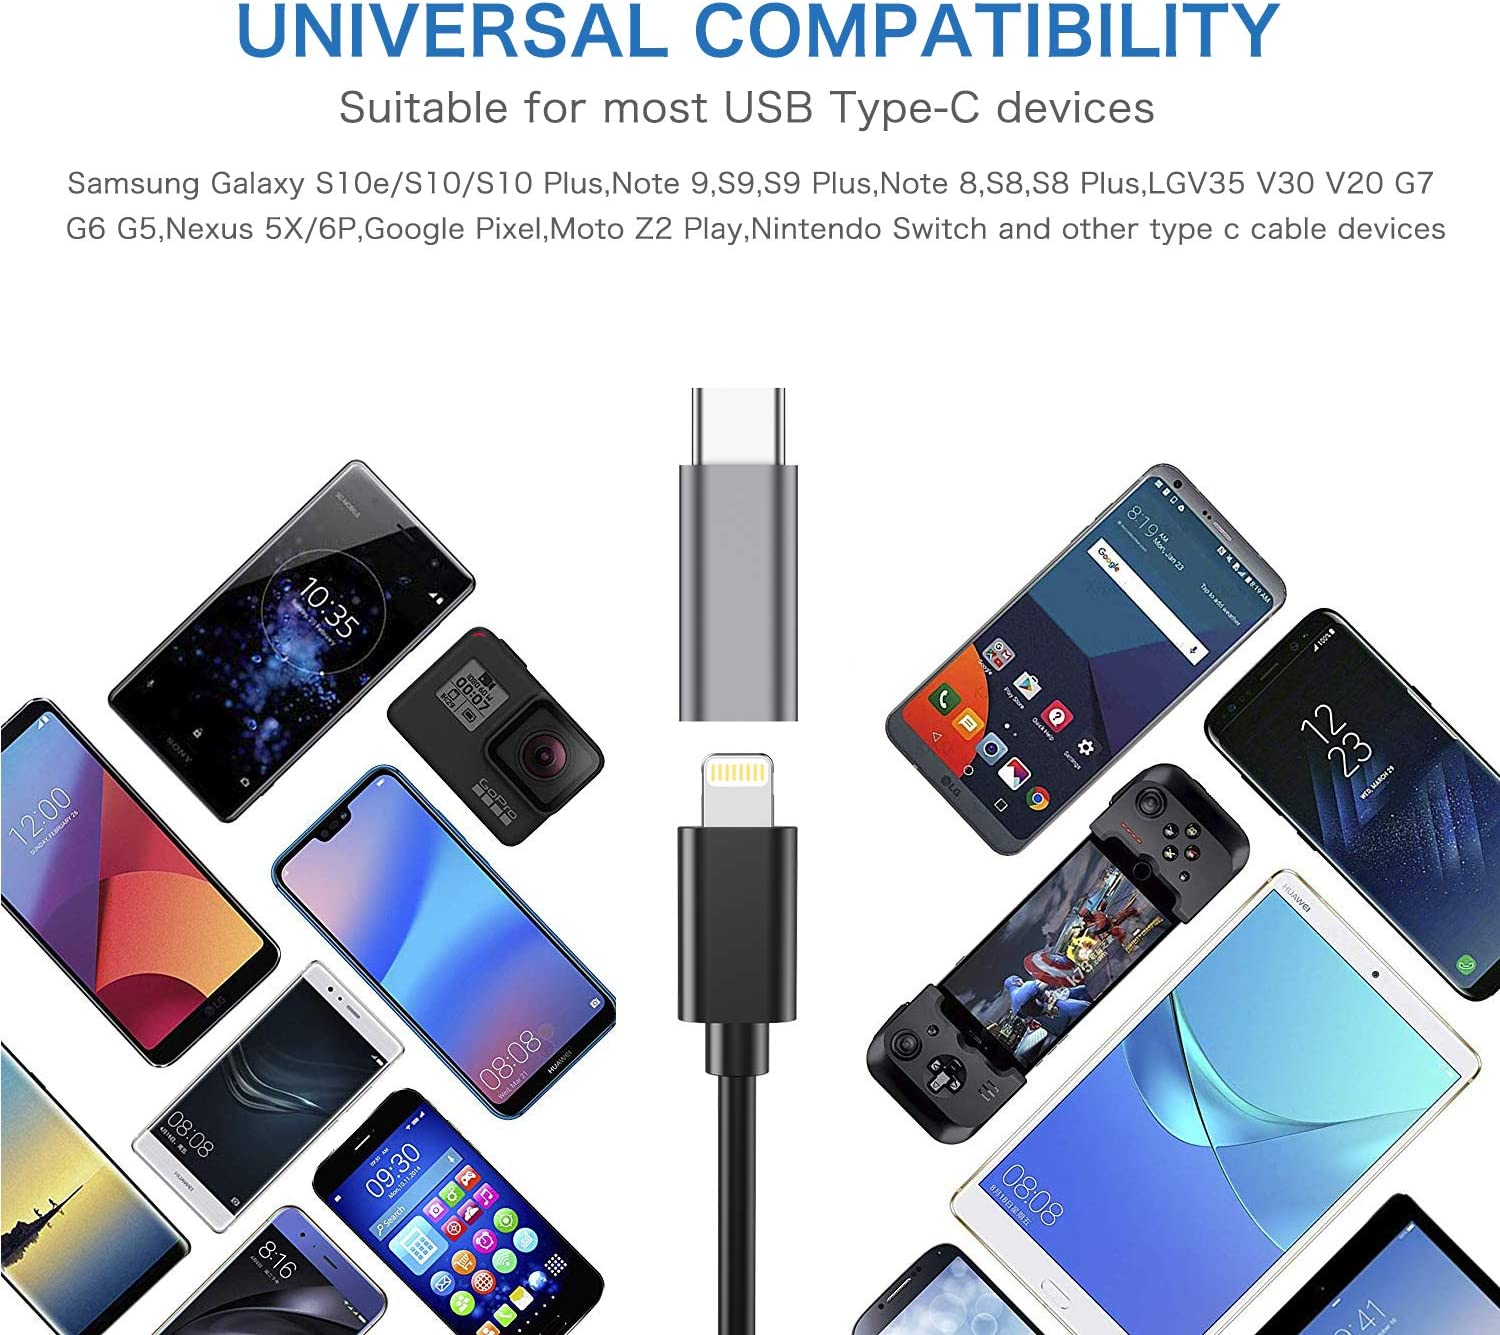 2-Pack ,i OS Lighting Cable Gray to USB Type C - Charging Adapter Compatible with Galaxy S20 S10 S9 S8 Plus,Note 9 8 10,Google Pixel 4 3 2 XL and More Female USB-C Adapter Male